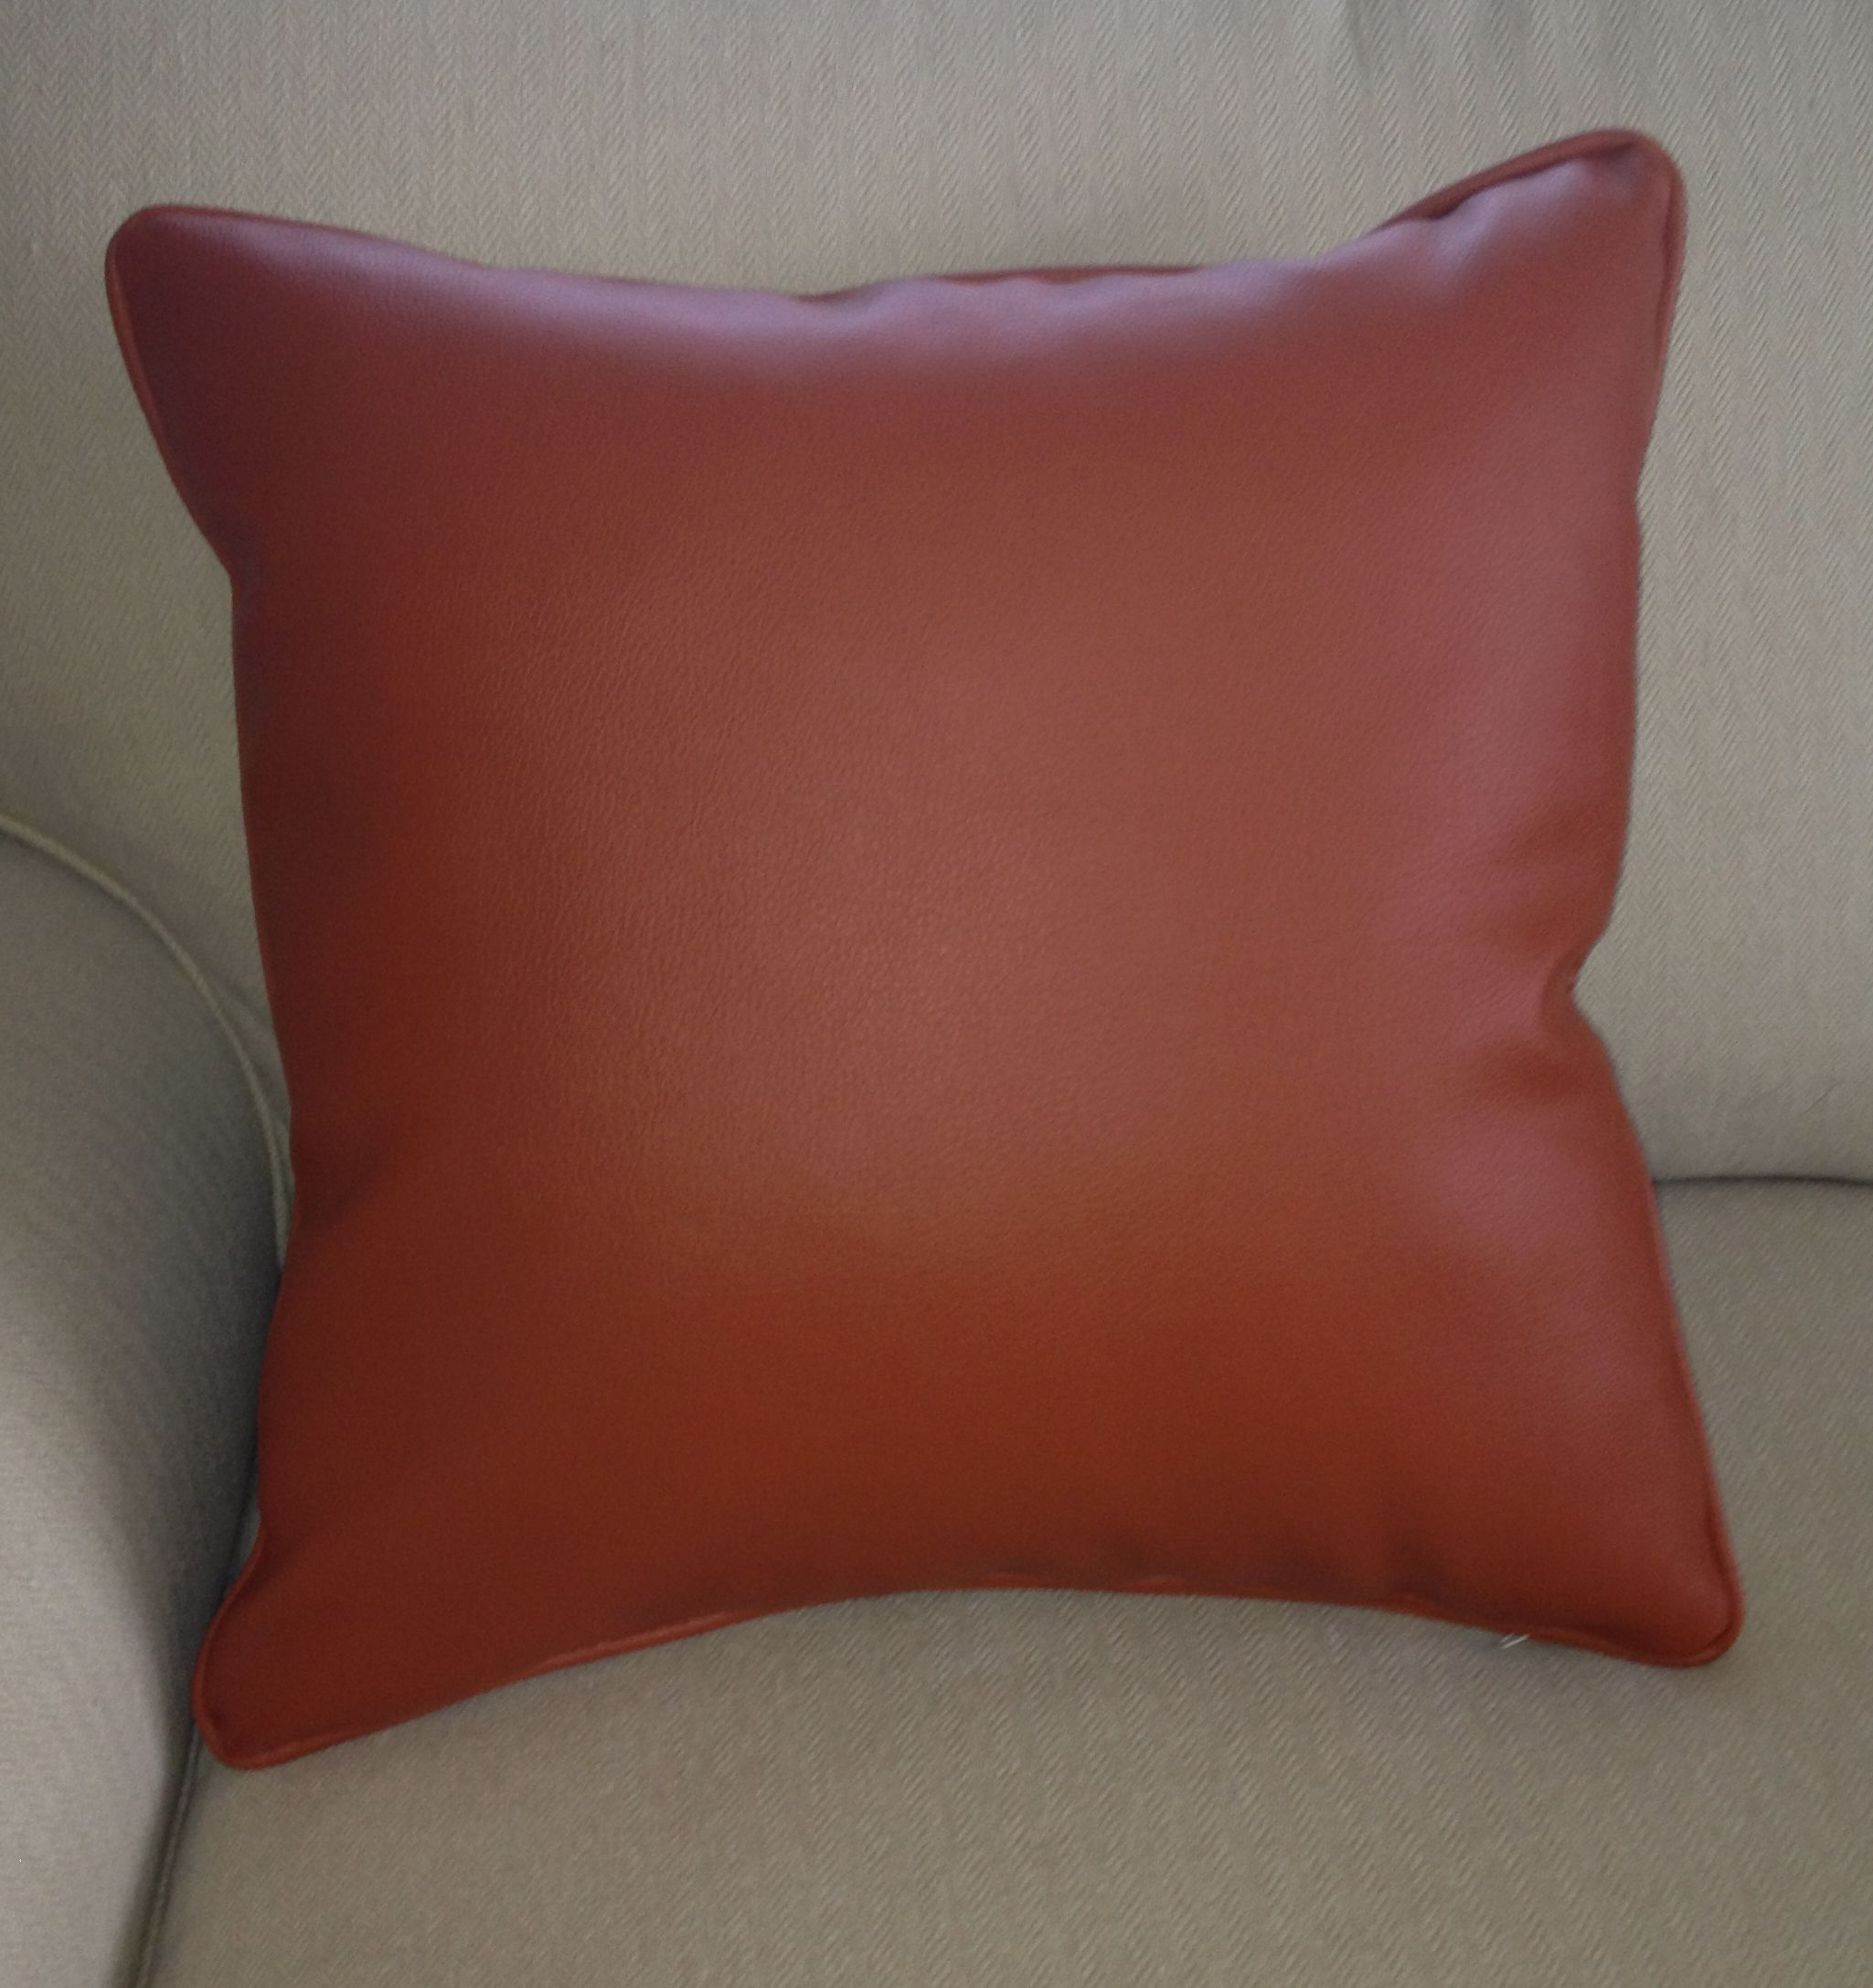 """orange recycled leather and polyurethane 18x18"""" pillow cover with hidden zipper and self welt.$45.00.www.kellydesignsofCT.com"""